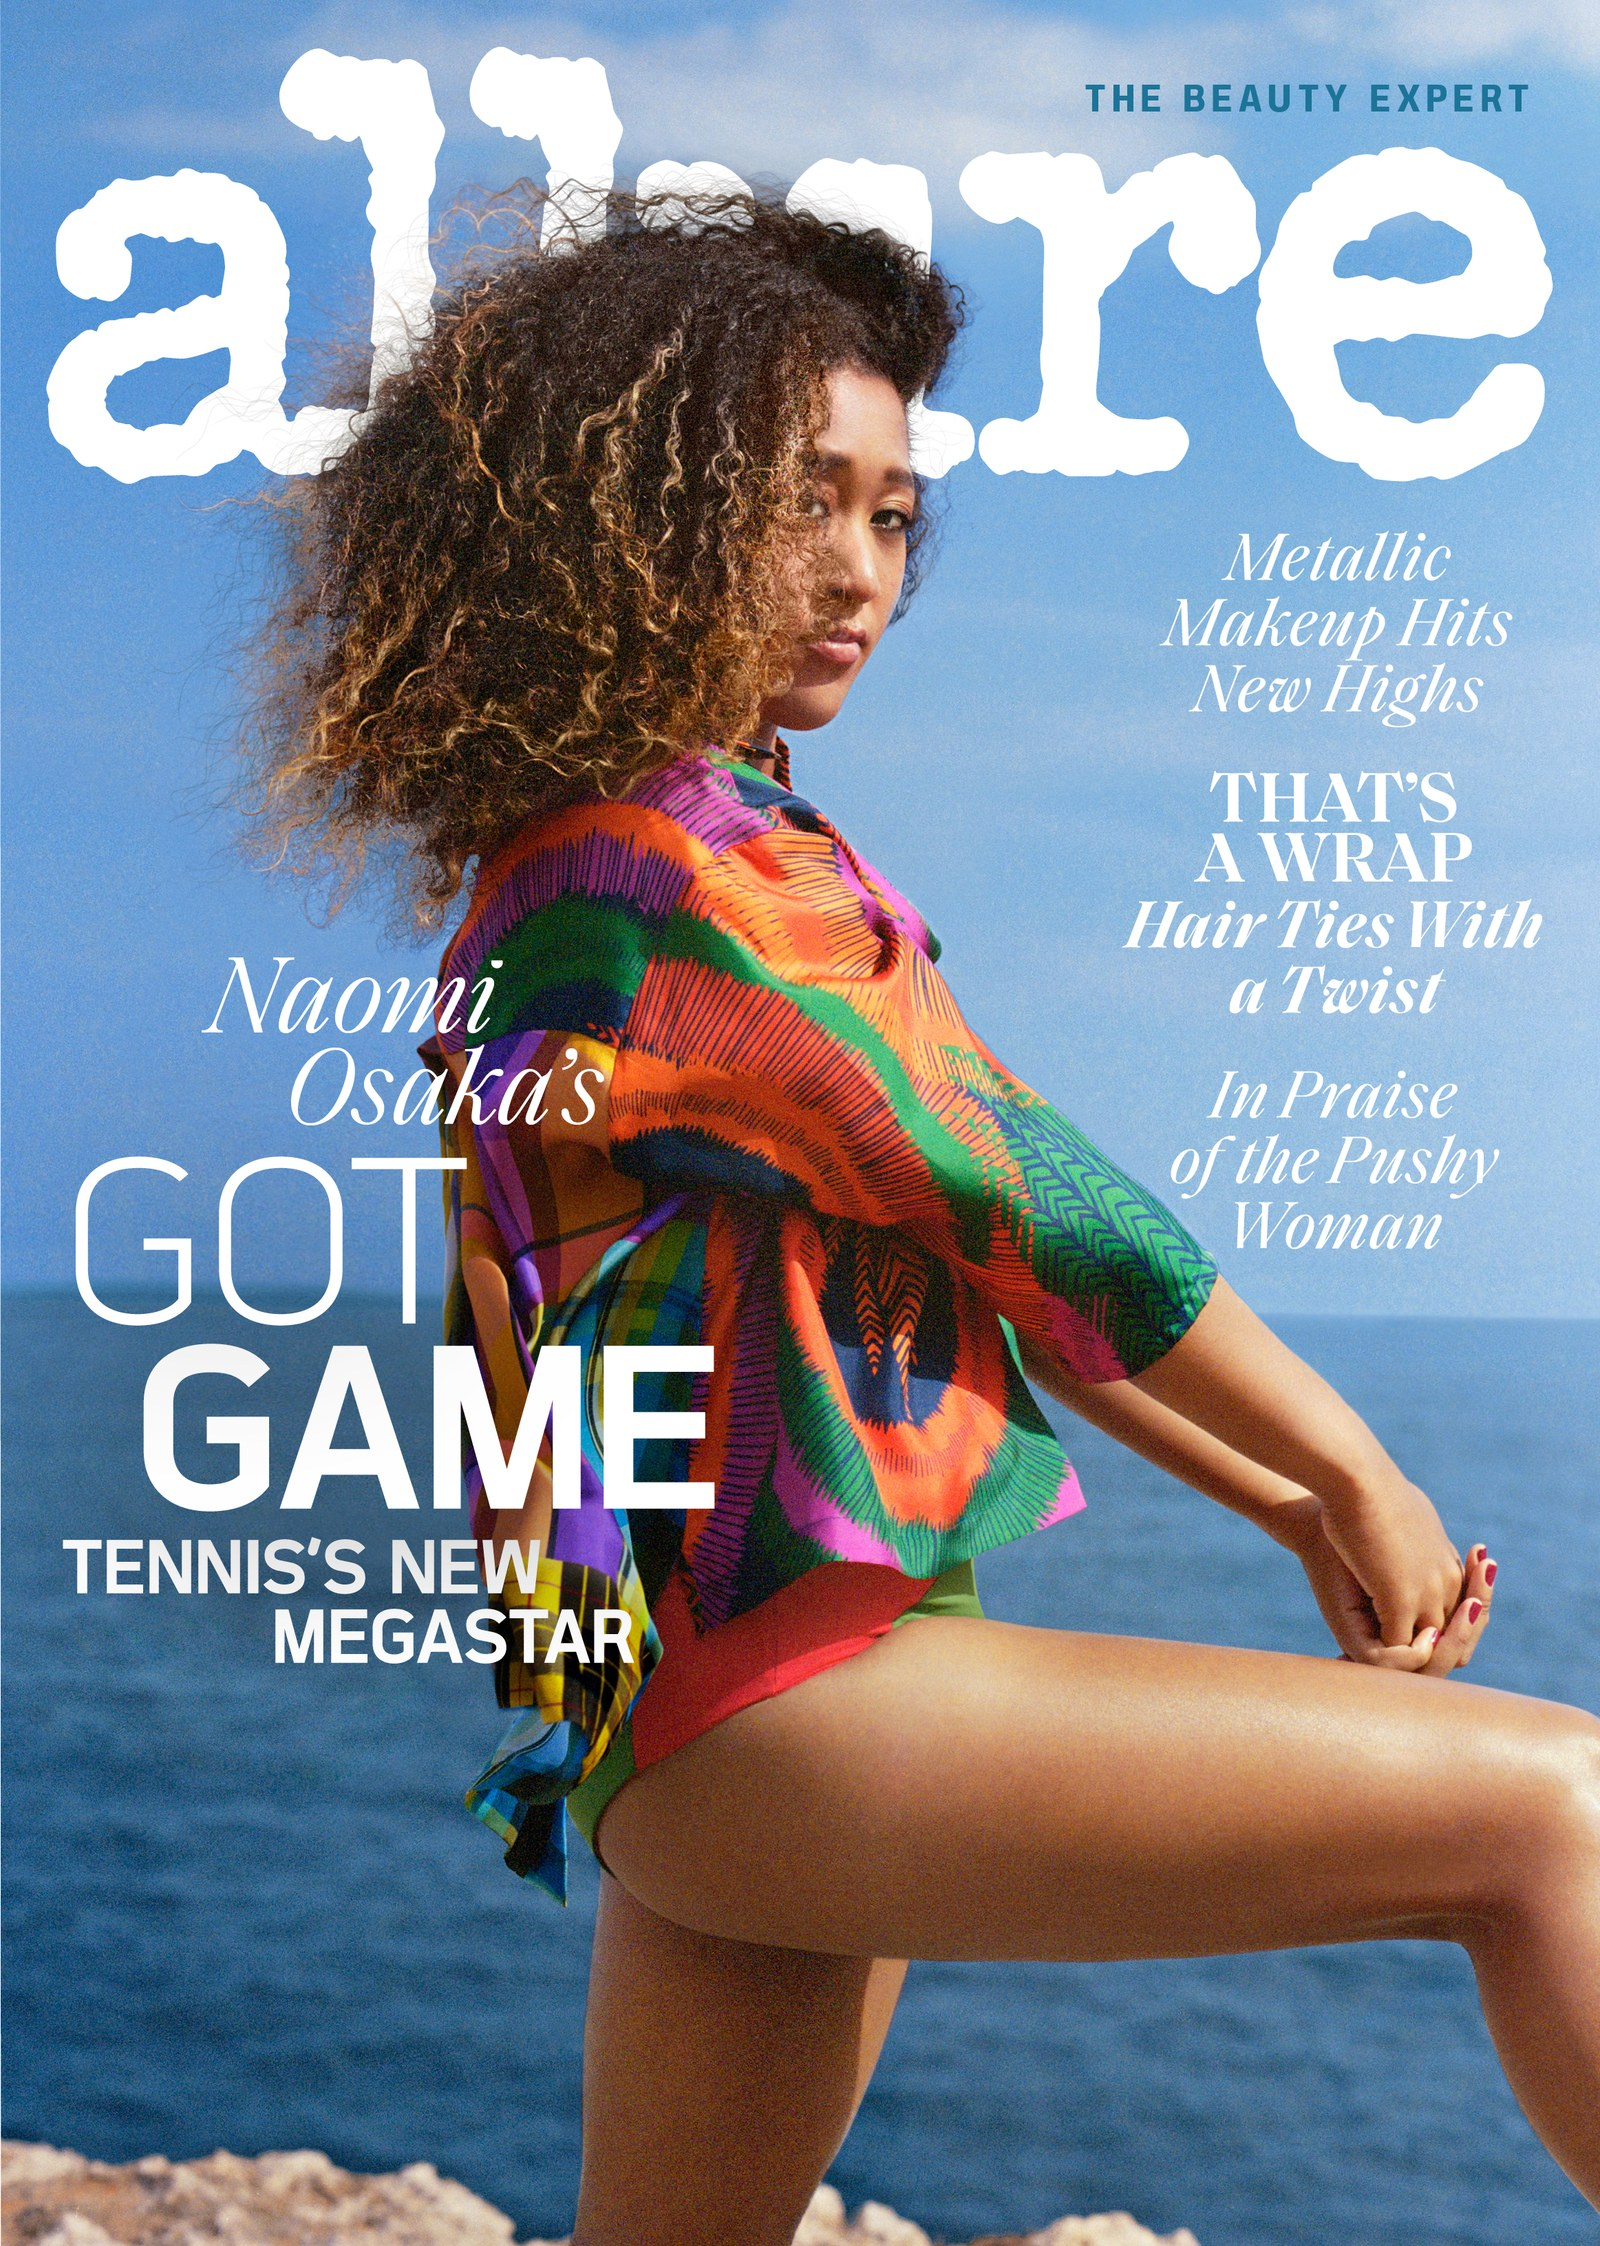 0819-allure-cover-naomi-osaka-coverlines.jpg